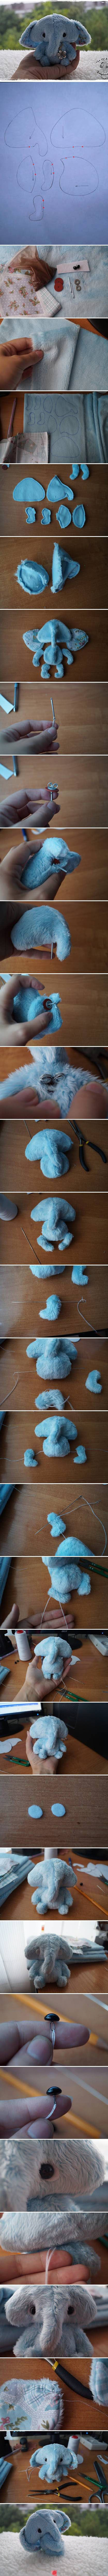 DIY Stuffed Animal - ELEPHANT - easy handmade sewing craft idea. No pattern, I'll try anyway!